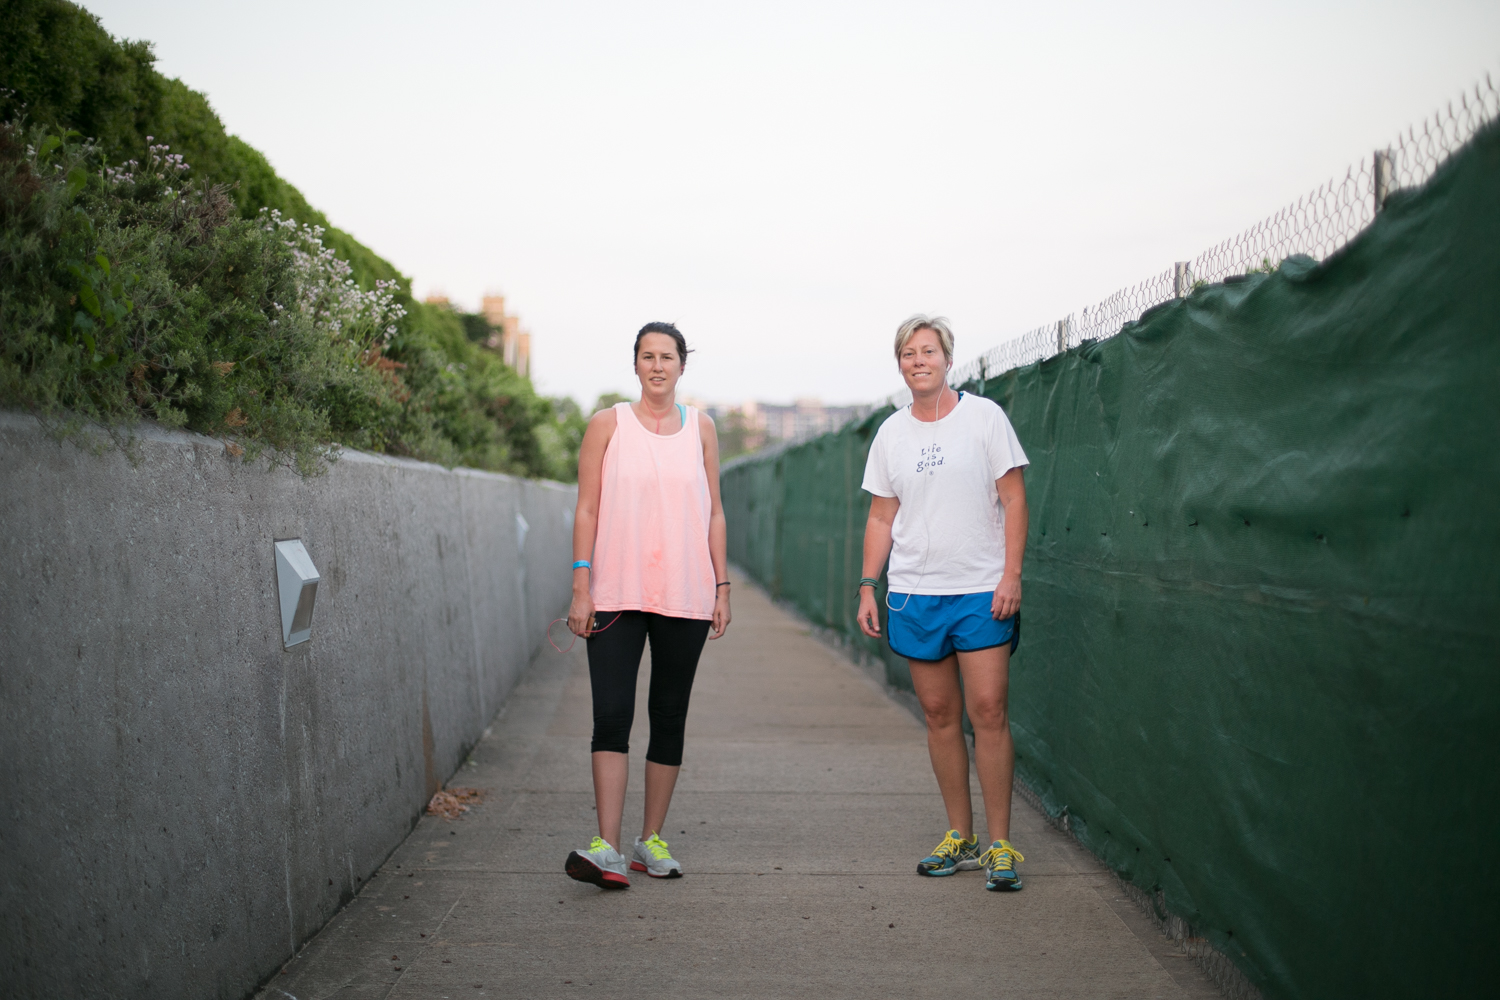 Heather and Julia usually run in the afternoons. But with the weather so nice, they've decided to switch it up. This morning, they're shooting for two miles.